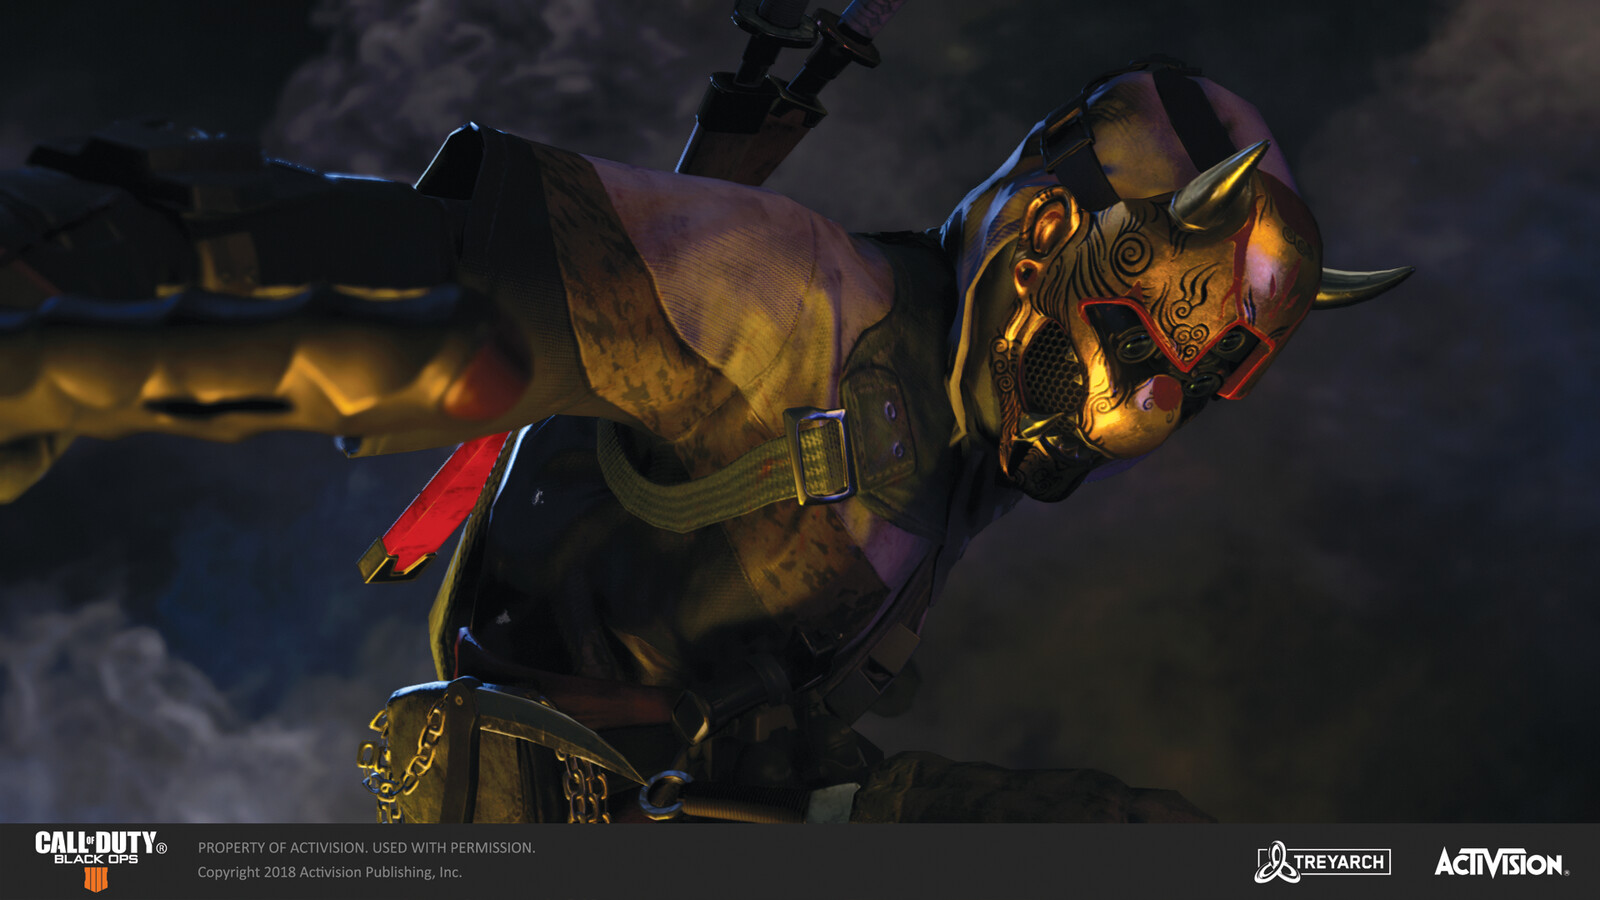 Responsible for texturing Spectre's golden mask variant (warpaint) for the 'Ninja' skin, released during the Operation Spectre Rising DLC. The base mask and body design concept was done by Karakter.